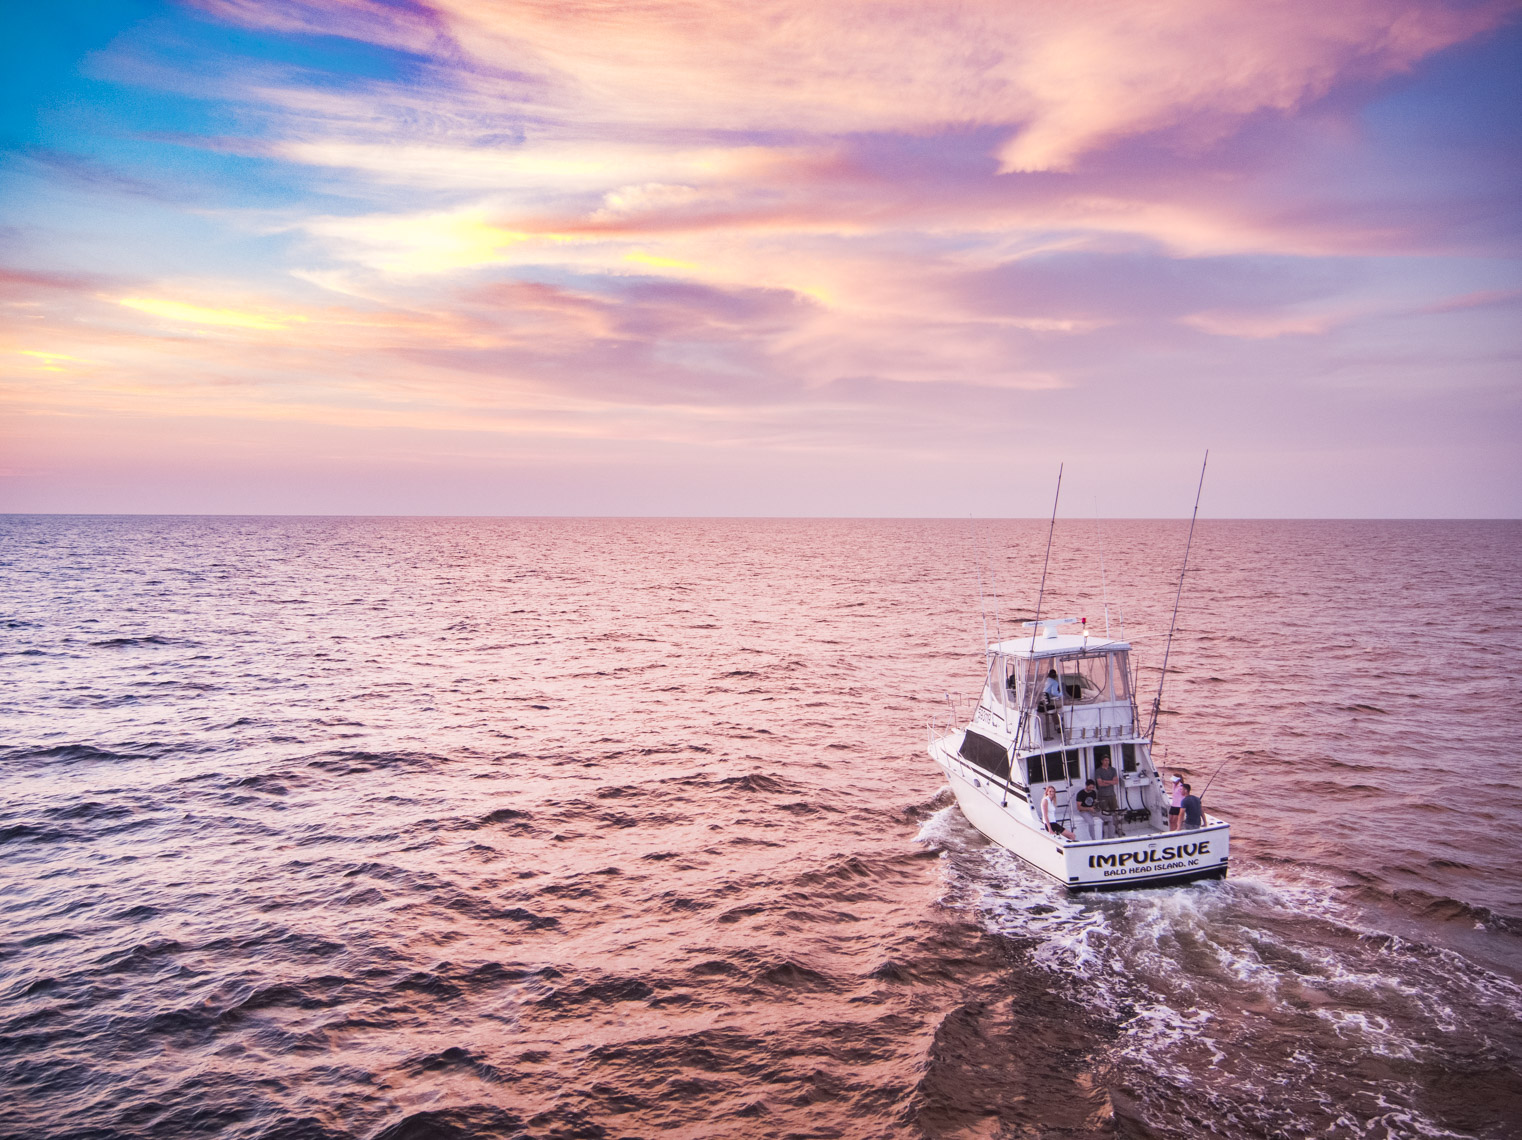 Deep Sea Fishing with Impulsive Charters; Southport, North Carolina